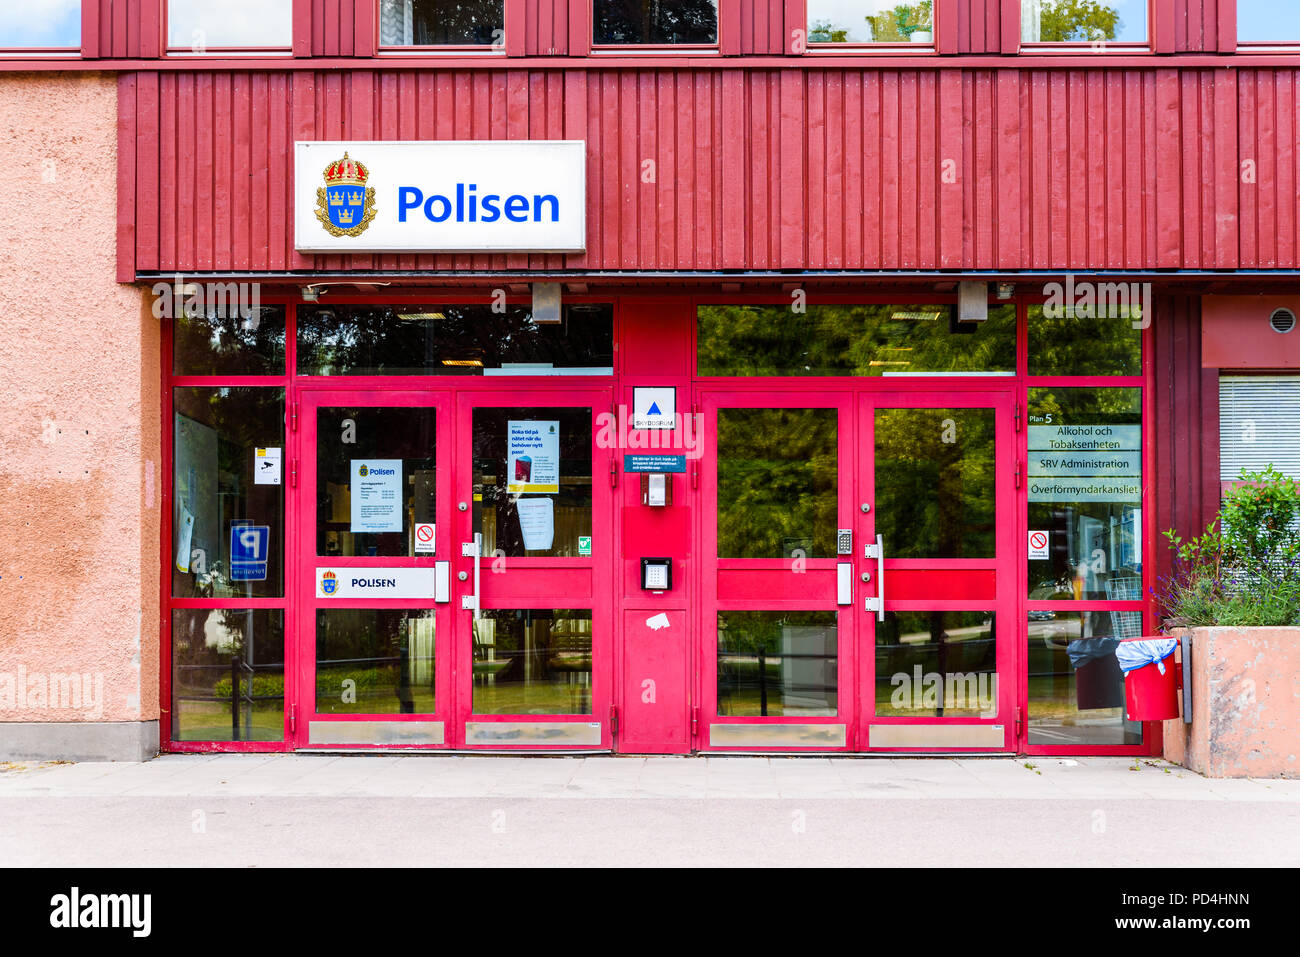 Motala, Sweden - June 30, 2018: The city police station on an ordinary day. No people visible. White sign on red facade. - Stock Image